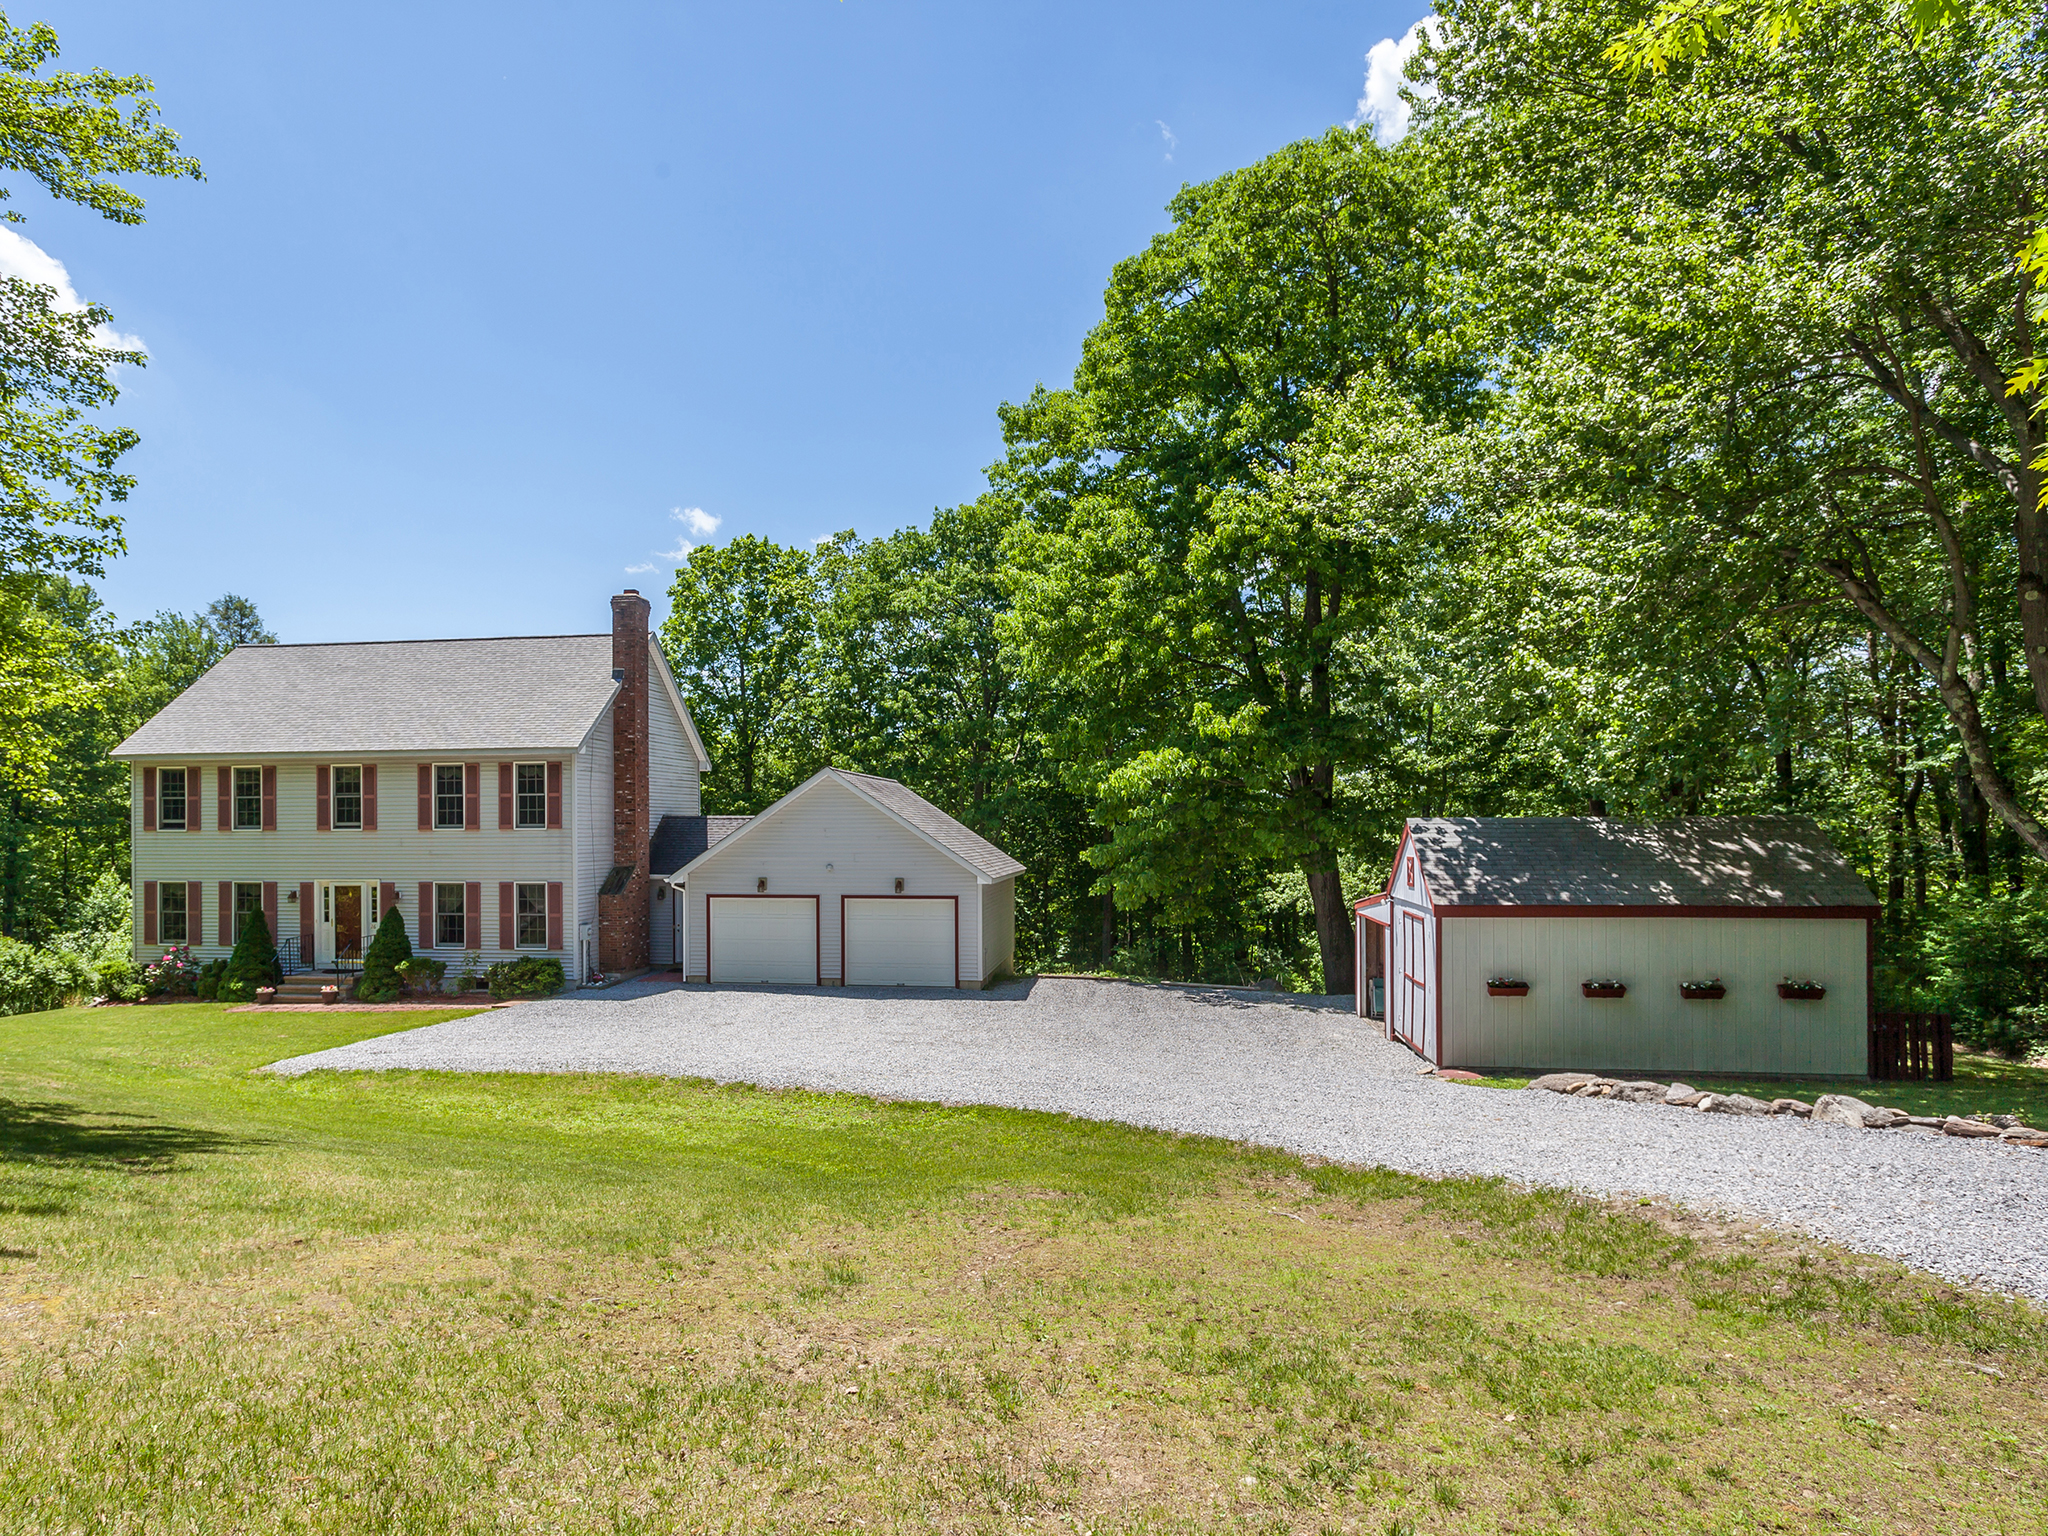 Single Family Home for Sale at Warren Country Colonial 26 Sunset Lake Rd Warren, Connecticut, 06754 United States